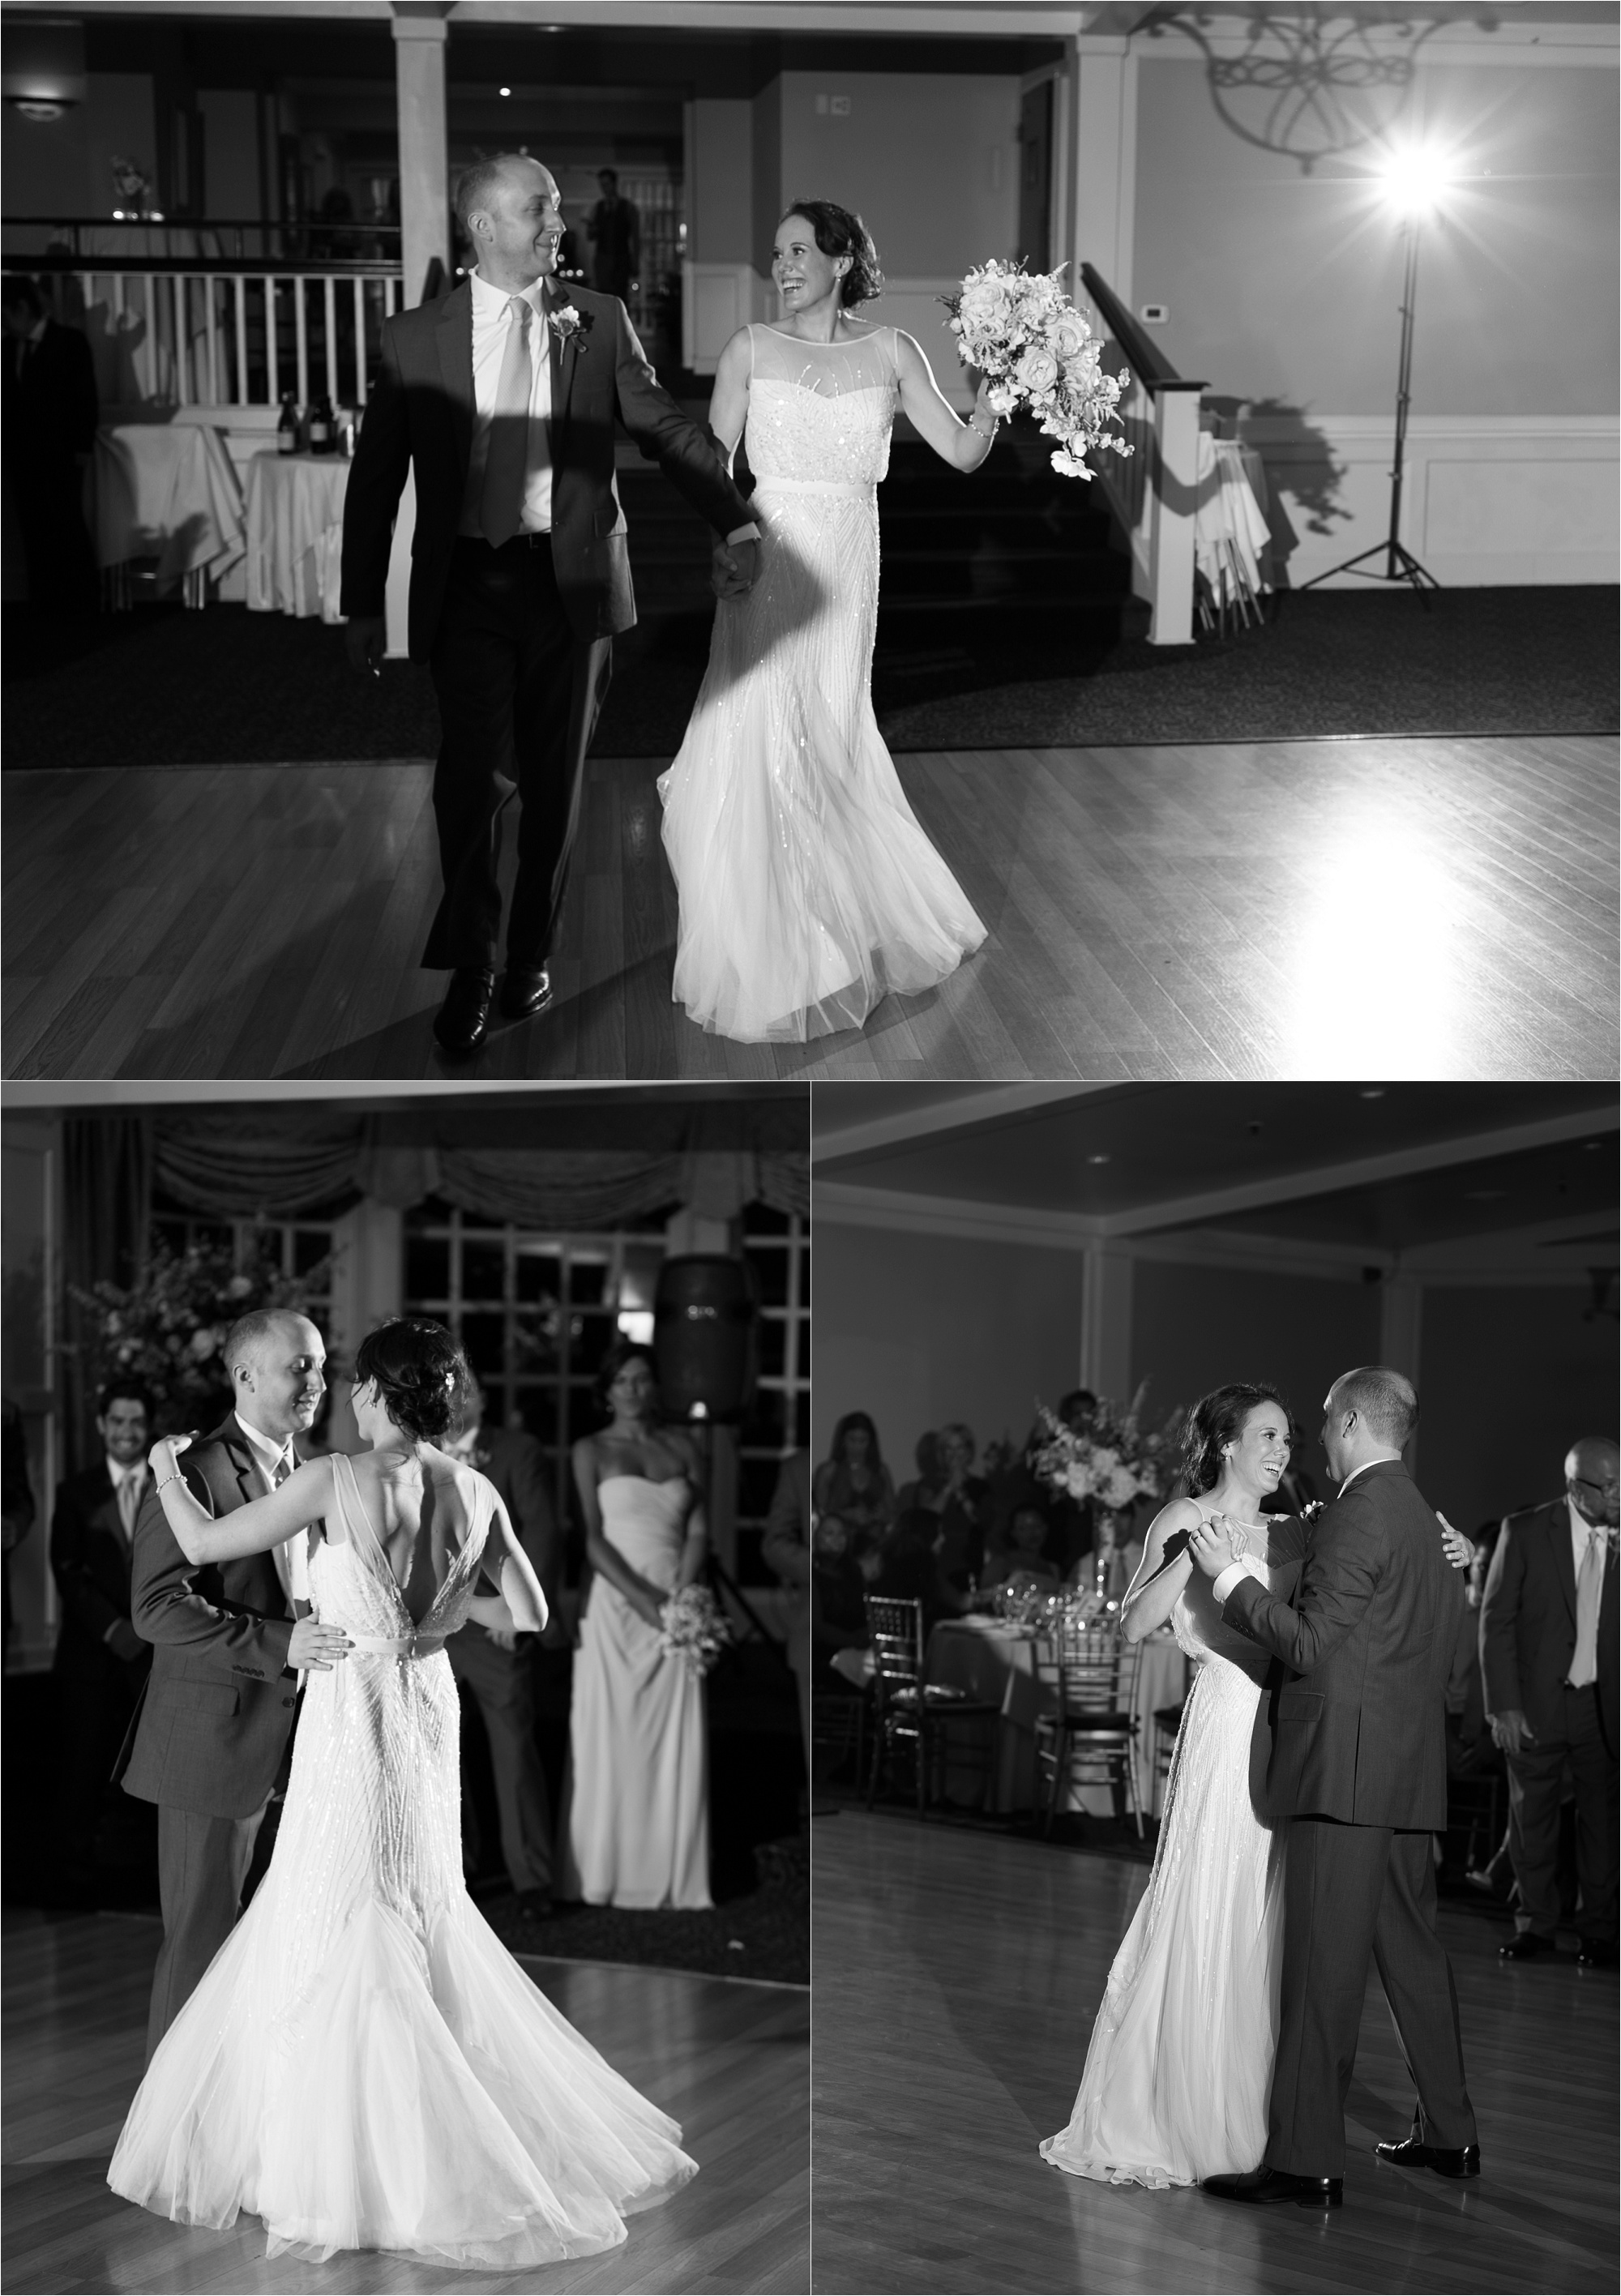 The bride and groom enjoy their first dance in front of friends and family